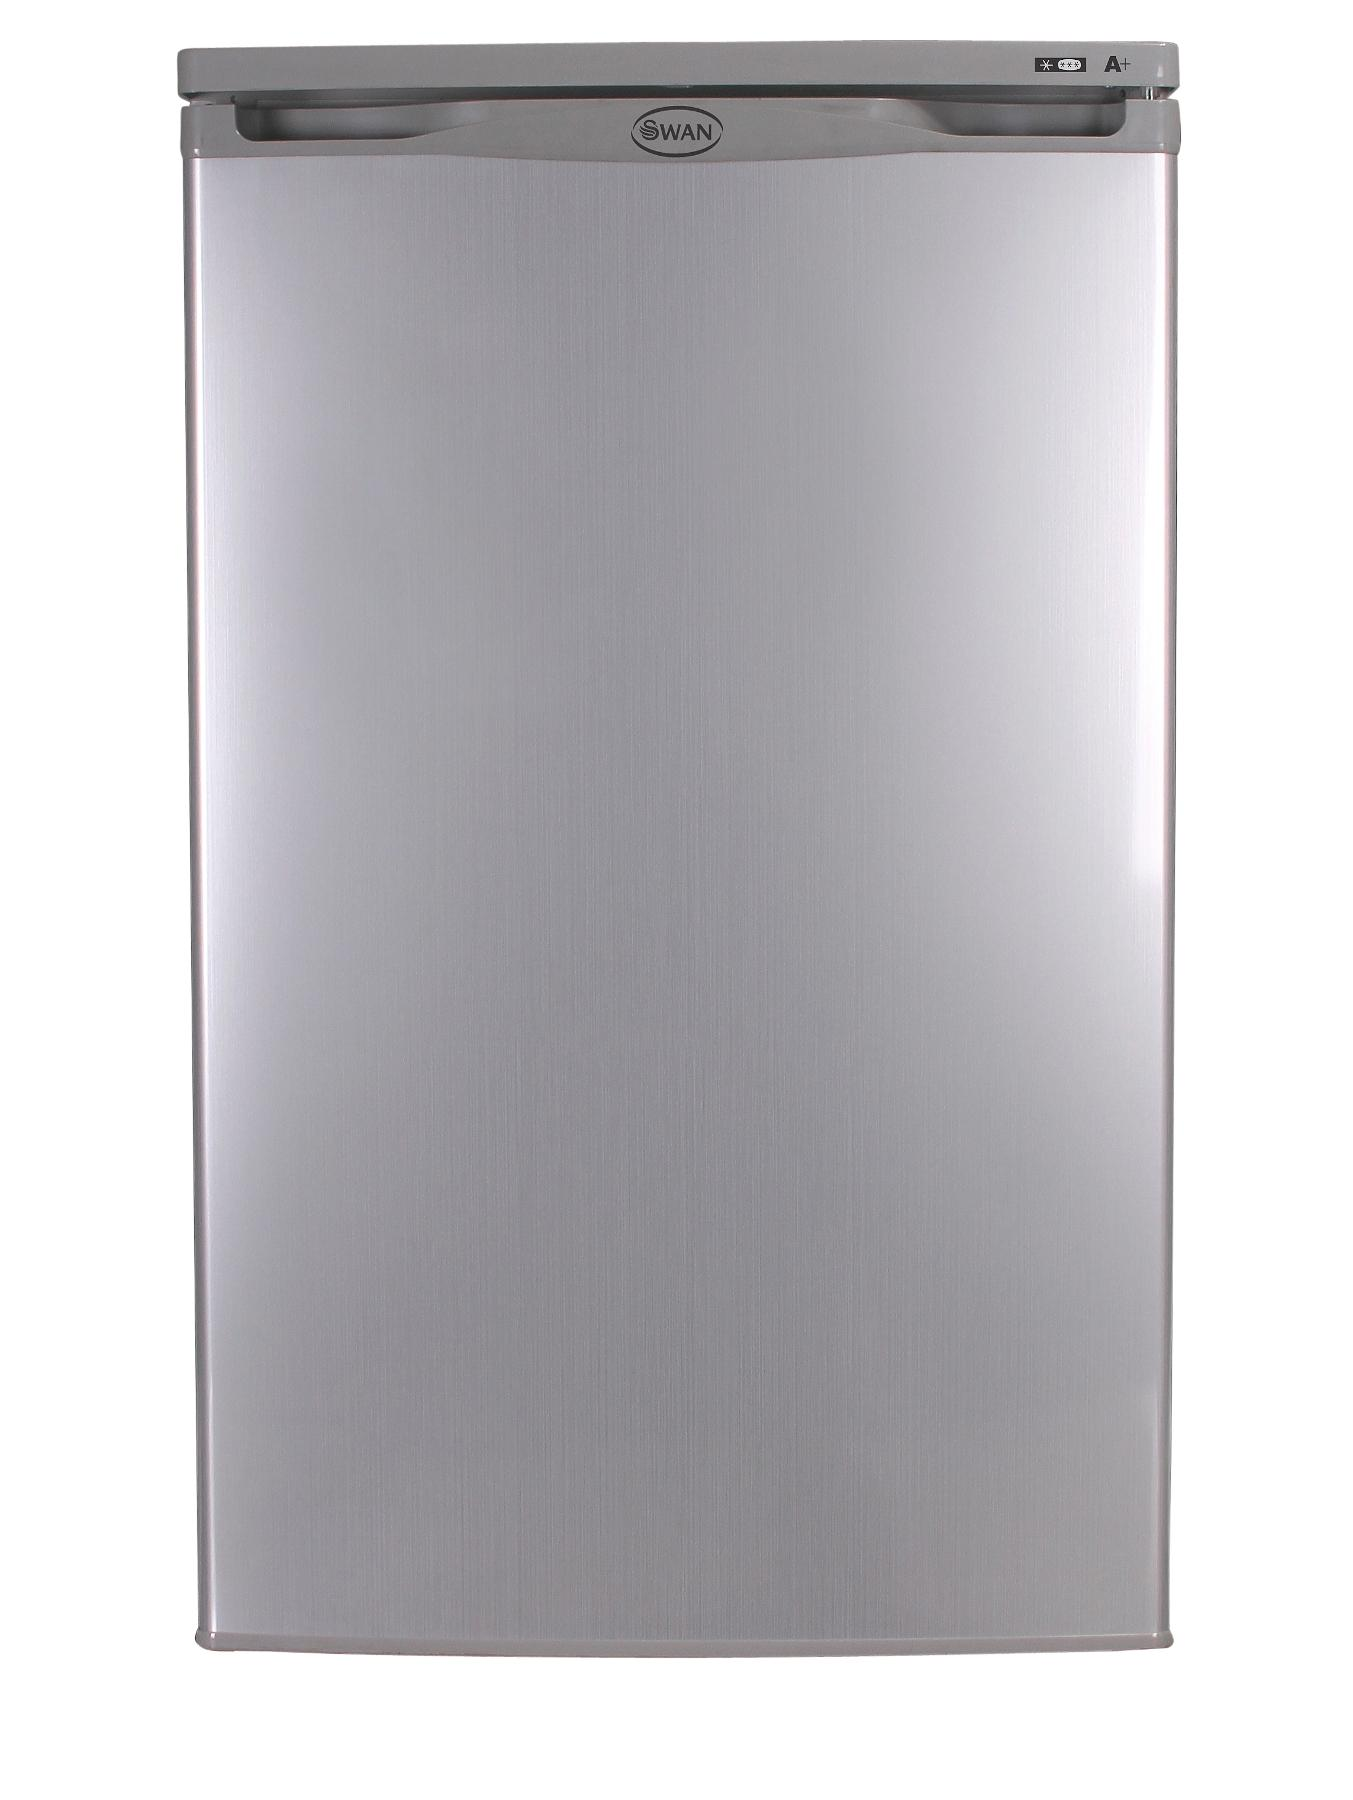 50cm Under Counter Freezer - Silver